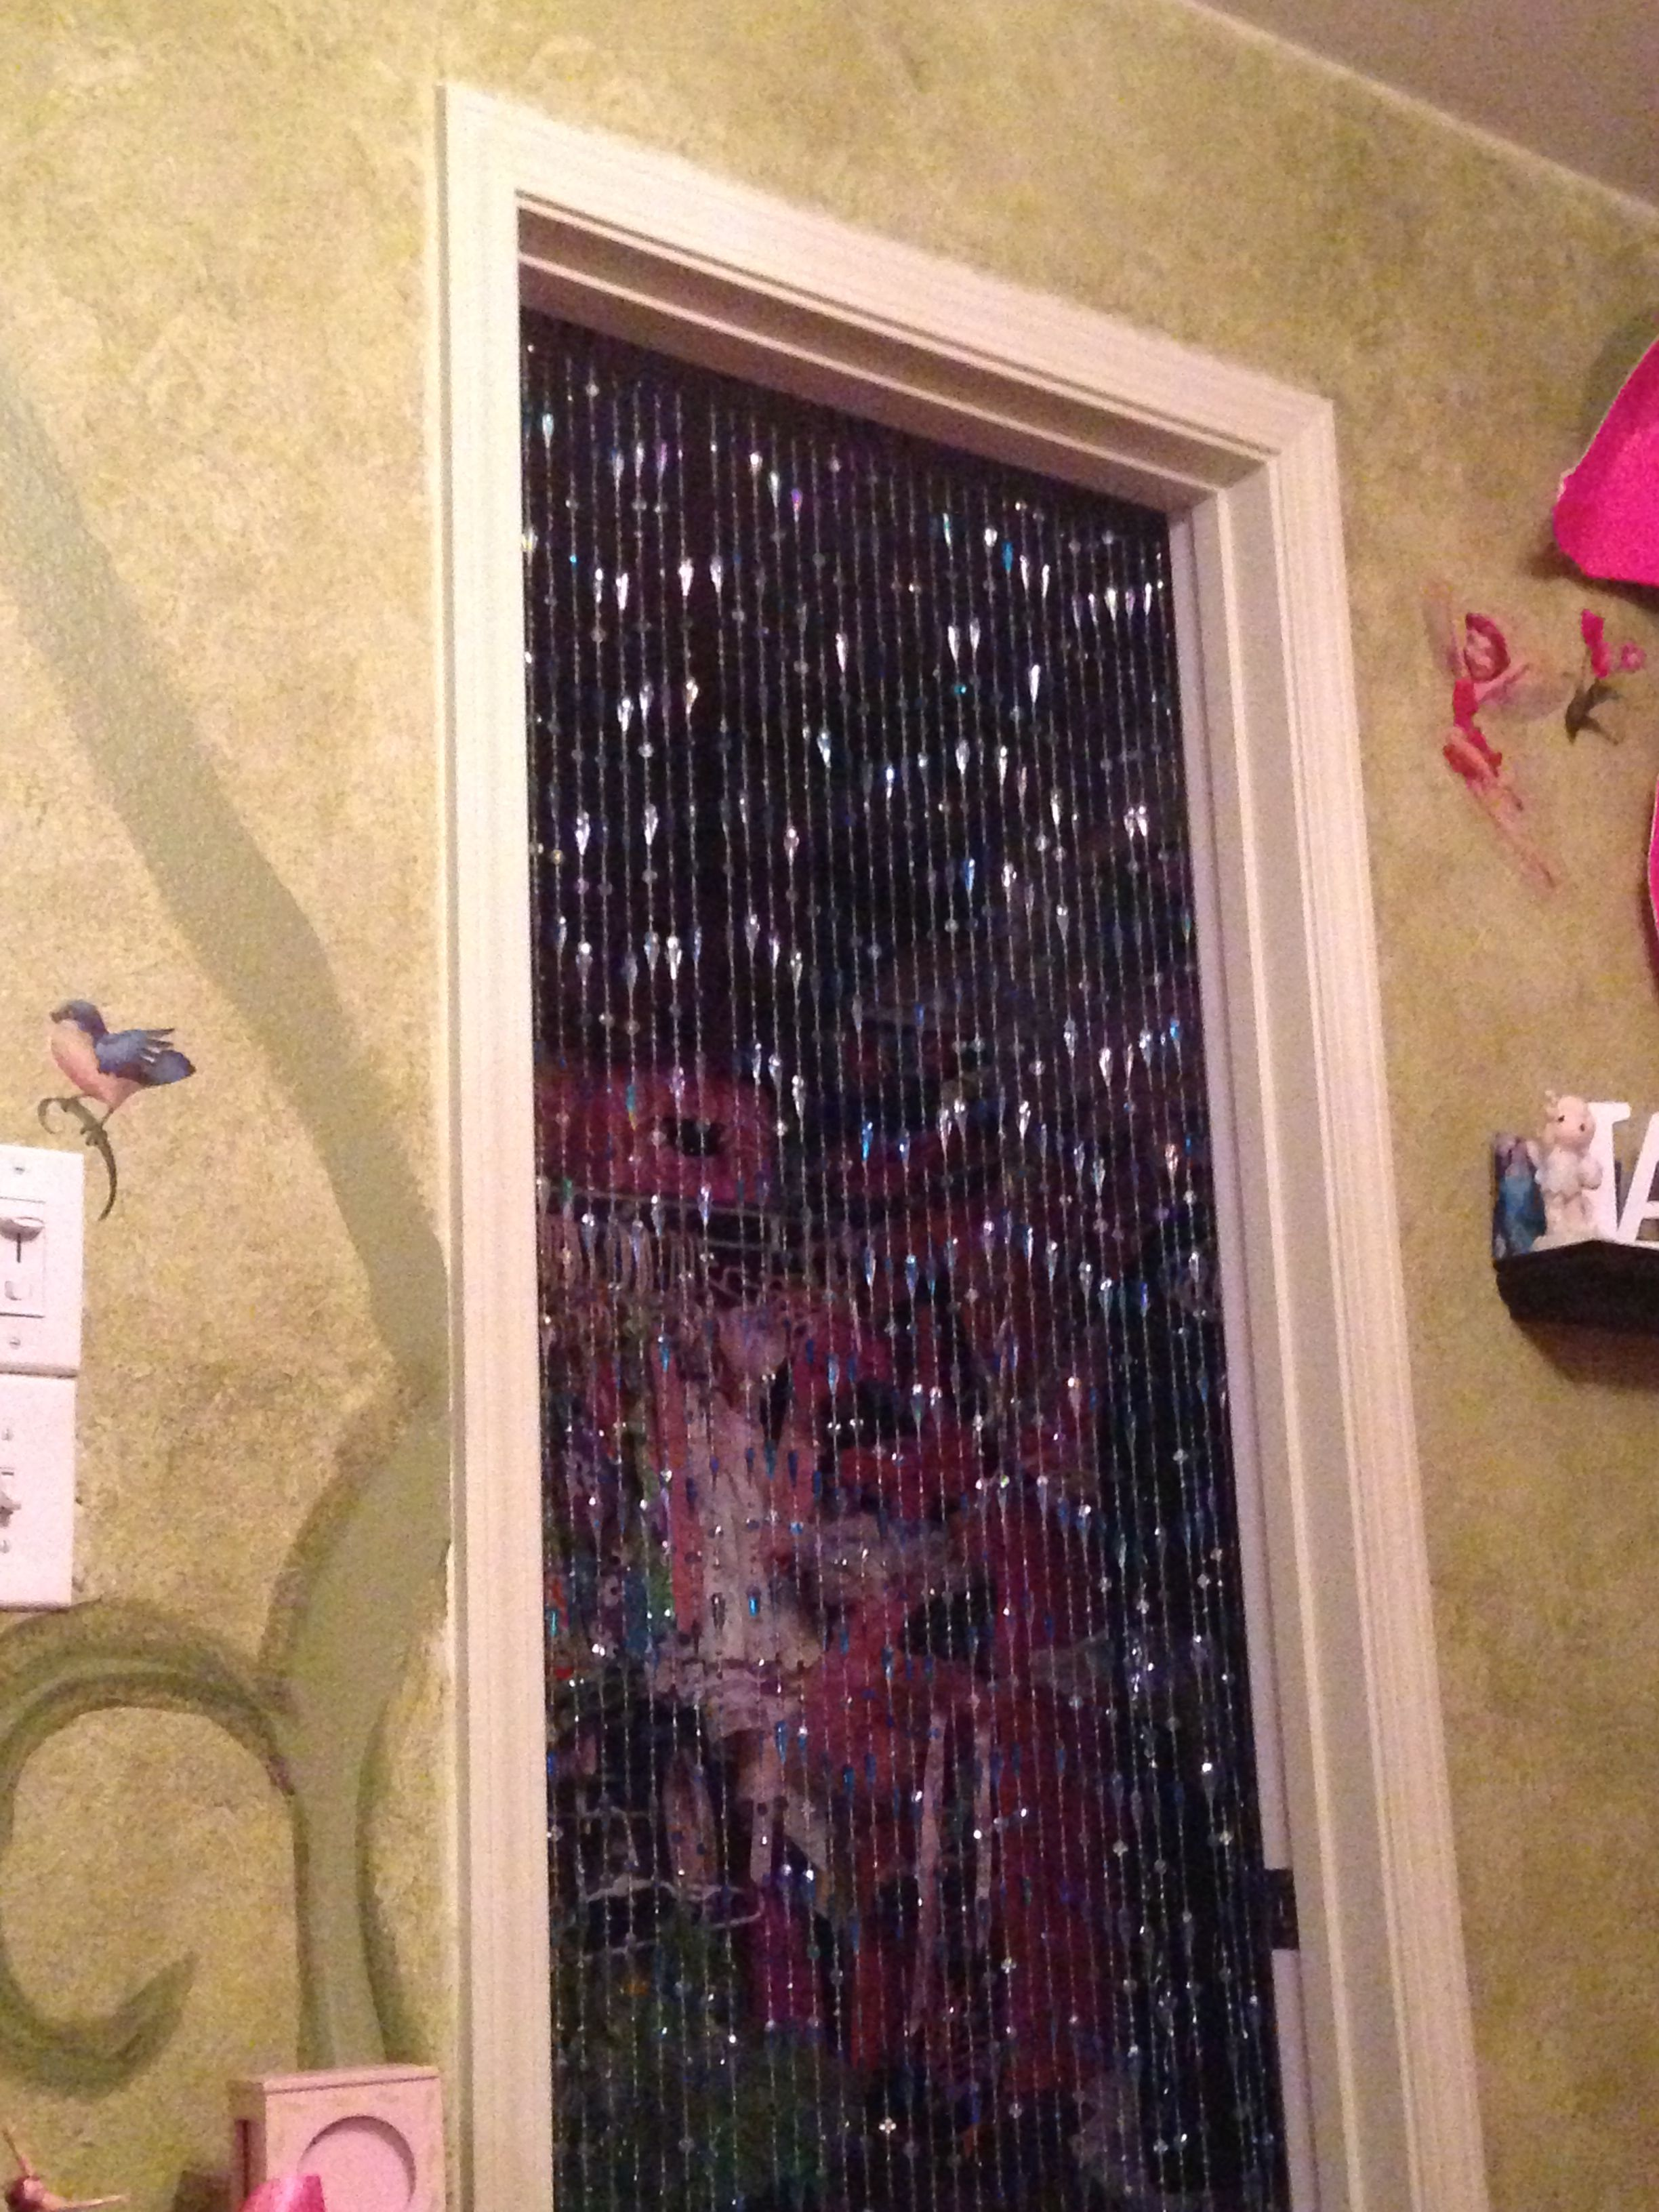 Closet Beads Curtains Bead Curtain As Closet Door For Little Girls Room My